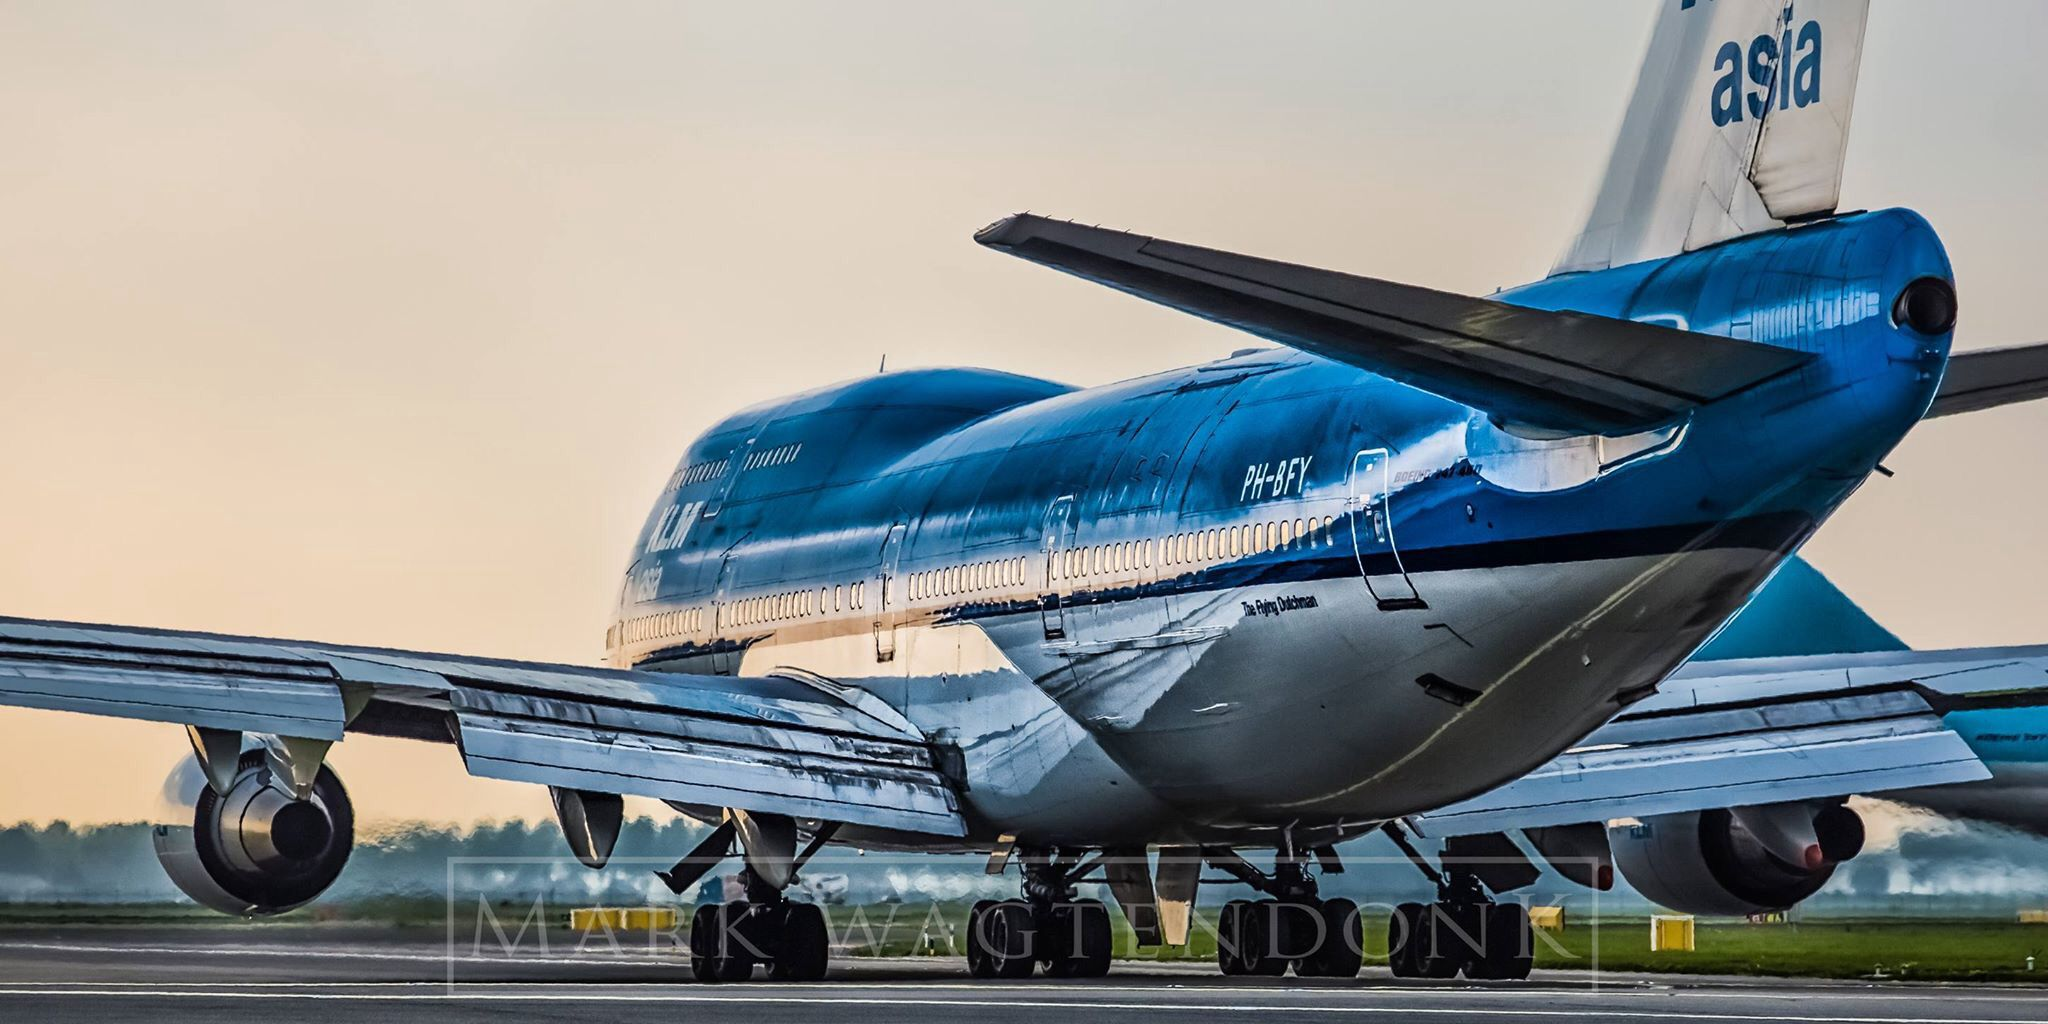 KLM B747-400 in the morning sun at AMS